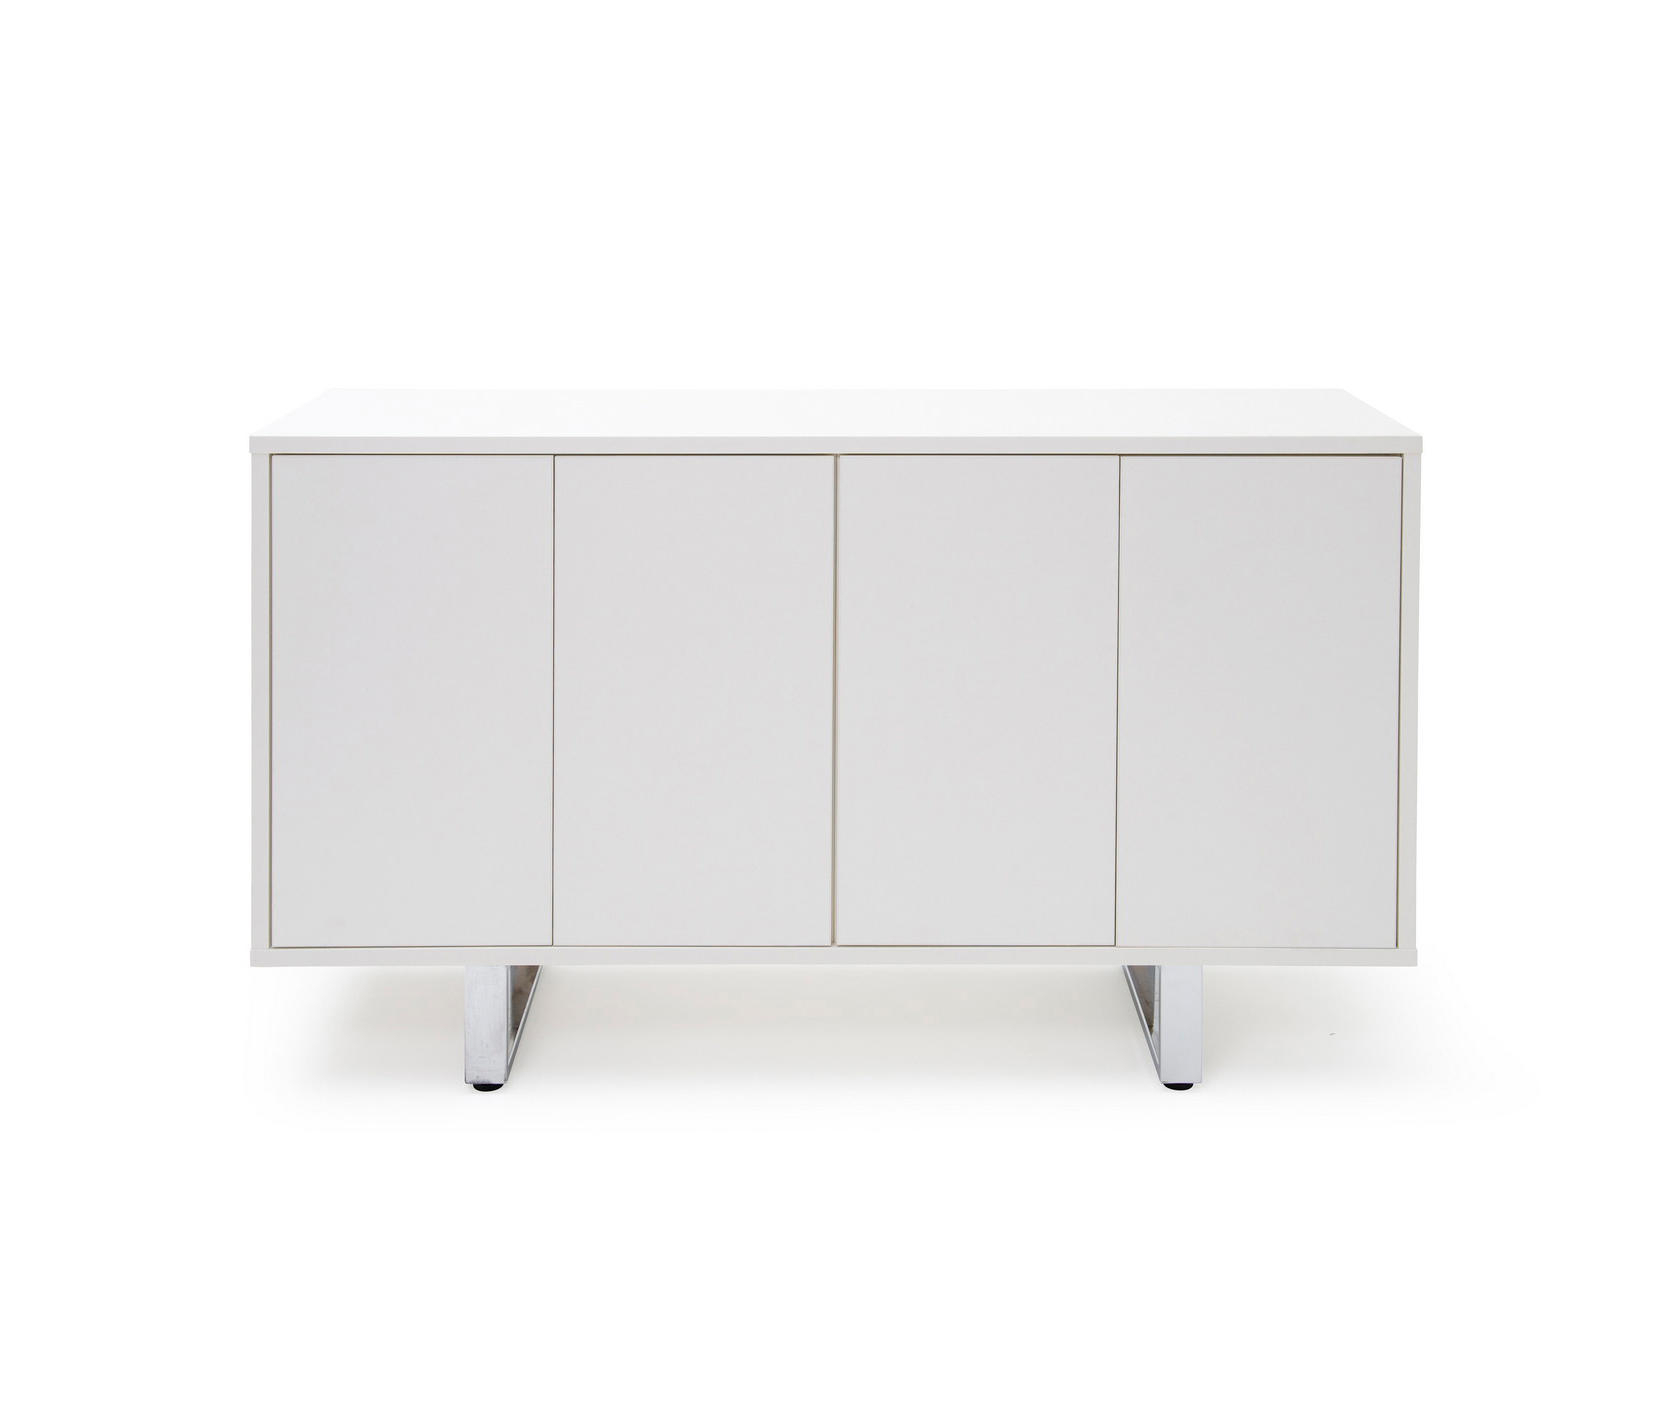 Andante – Sideboards / Kommoden Von Spacestor | Architonic In Newest Palisade Sideboards (View 1 of 20)